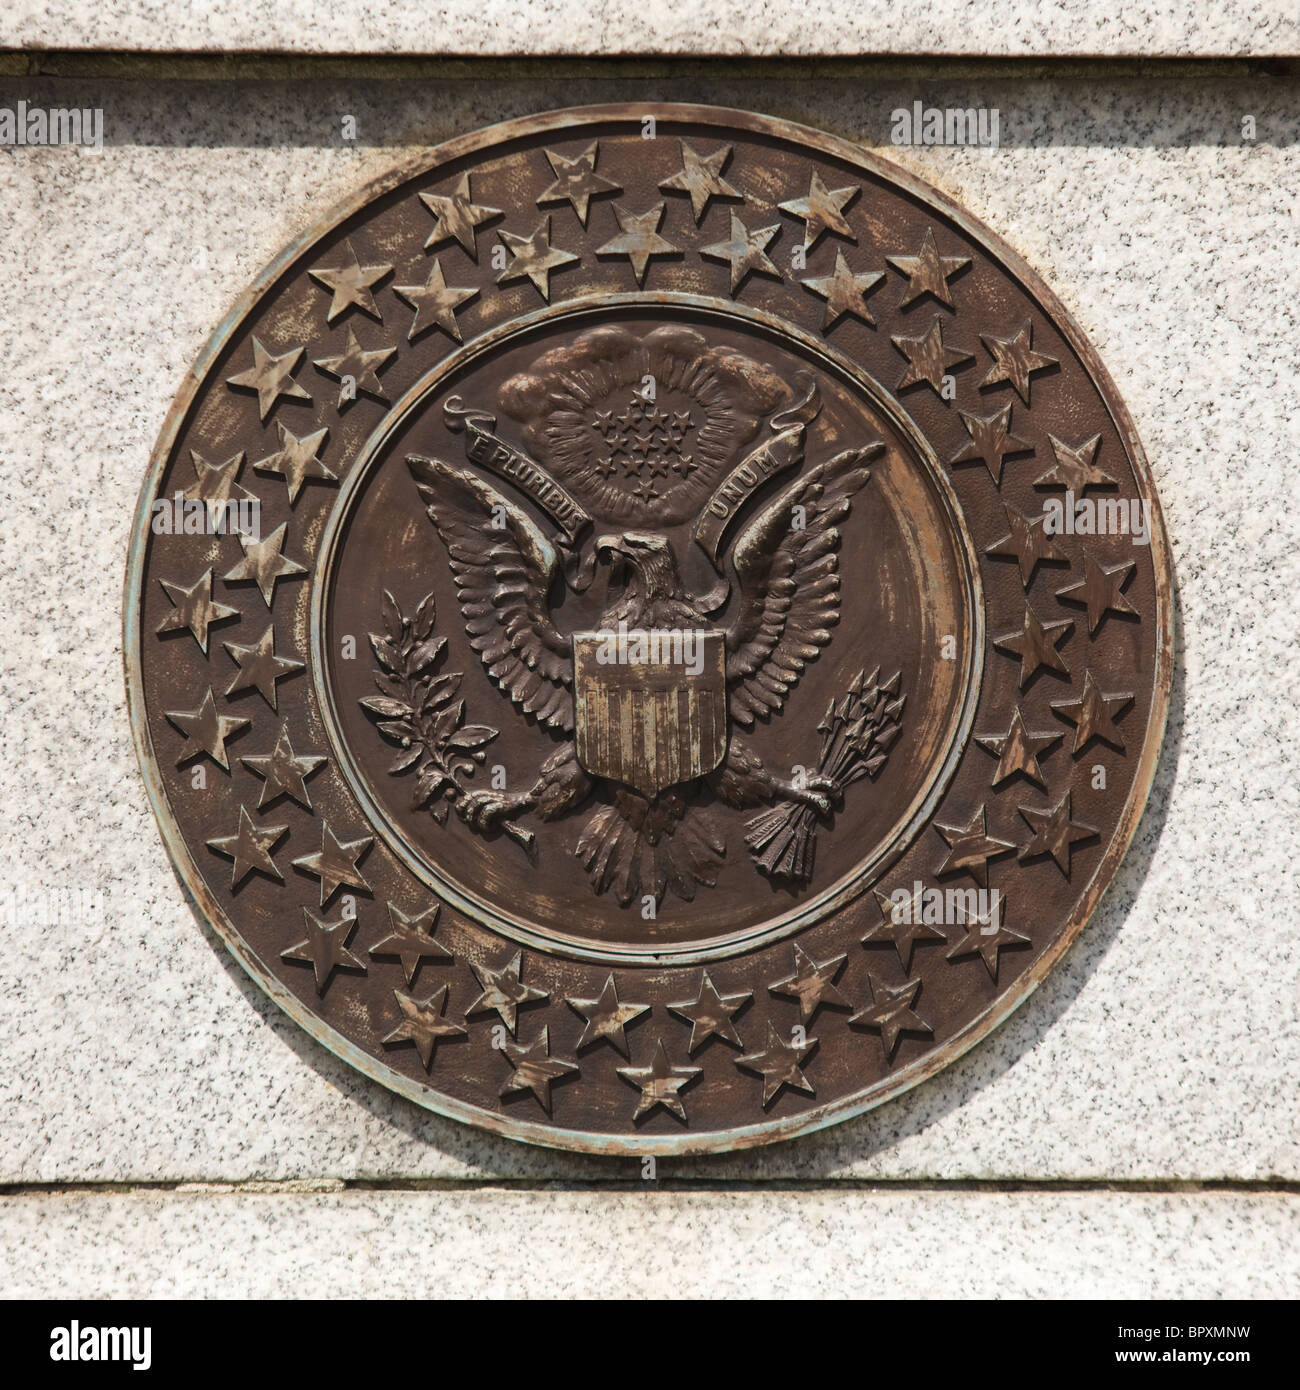 Great Seal of the United States - Stock Image